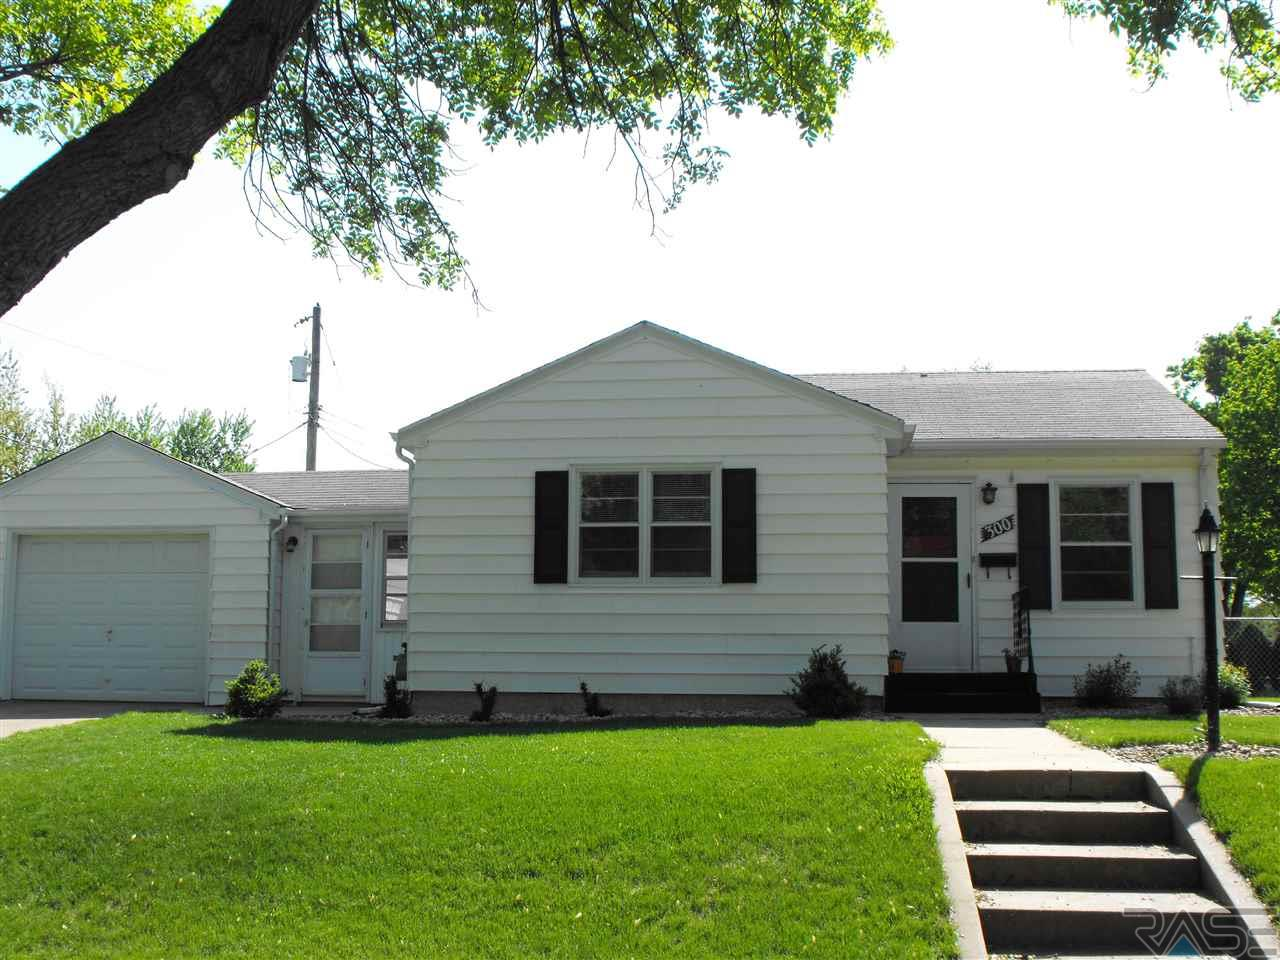 300 N Lowell Ave, SIOUX FALLS